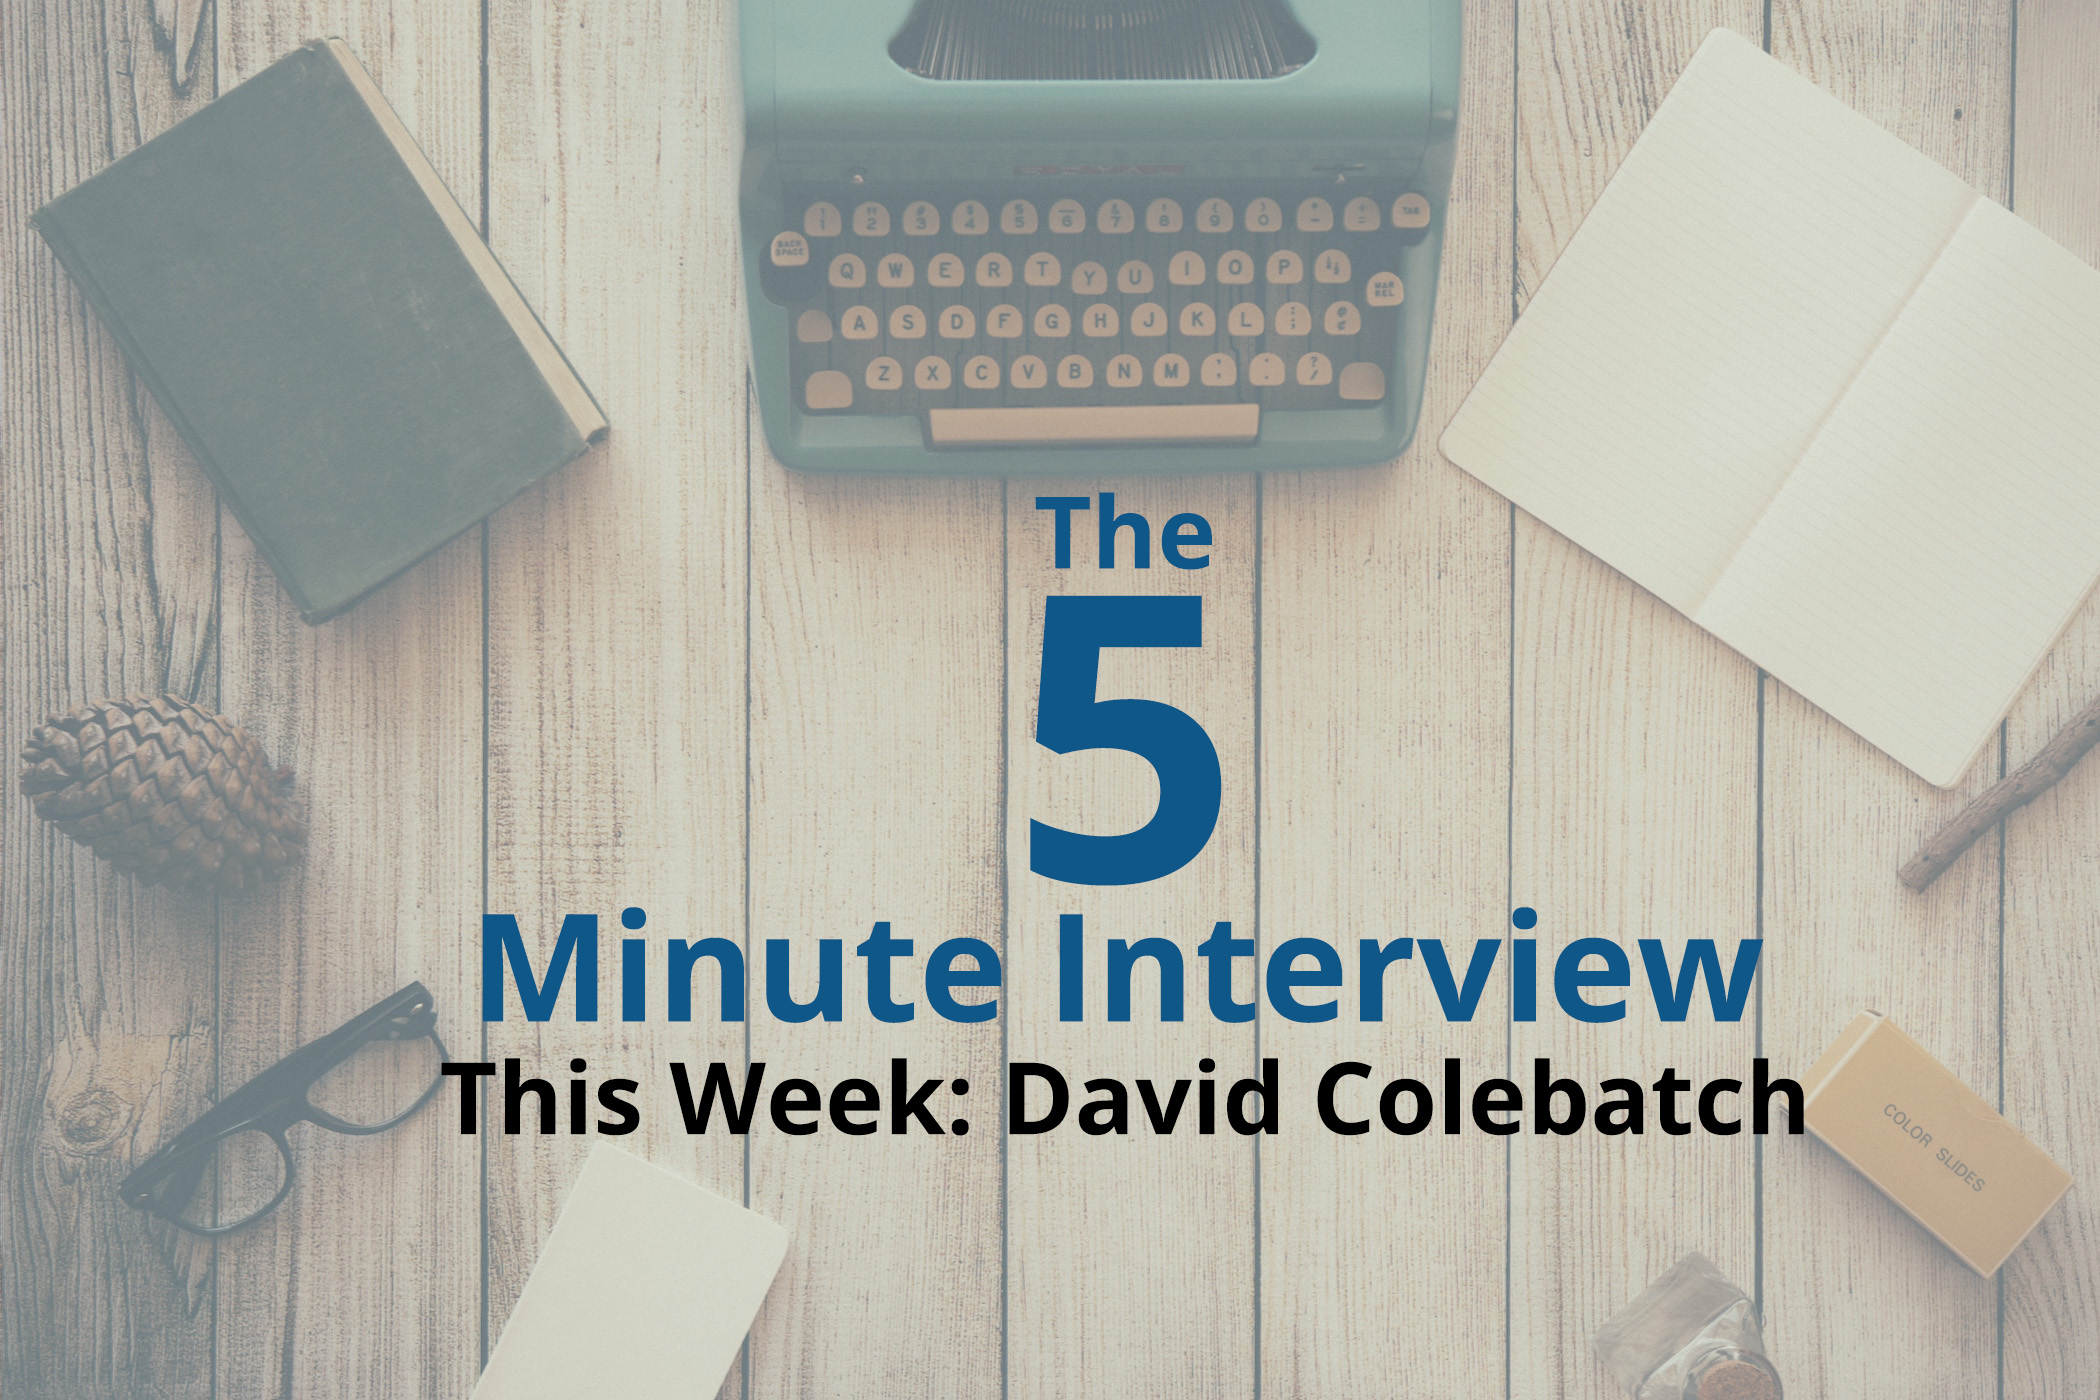 Catch This Week's 5-Minute Interview with David Colebatch, Co-Founder of xnlogic